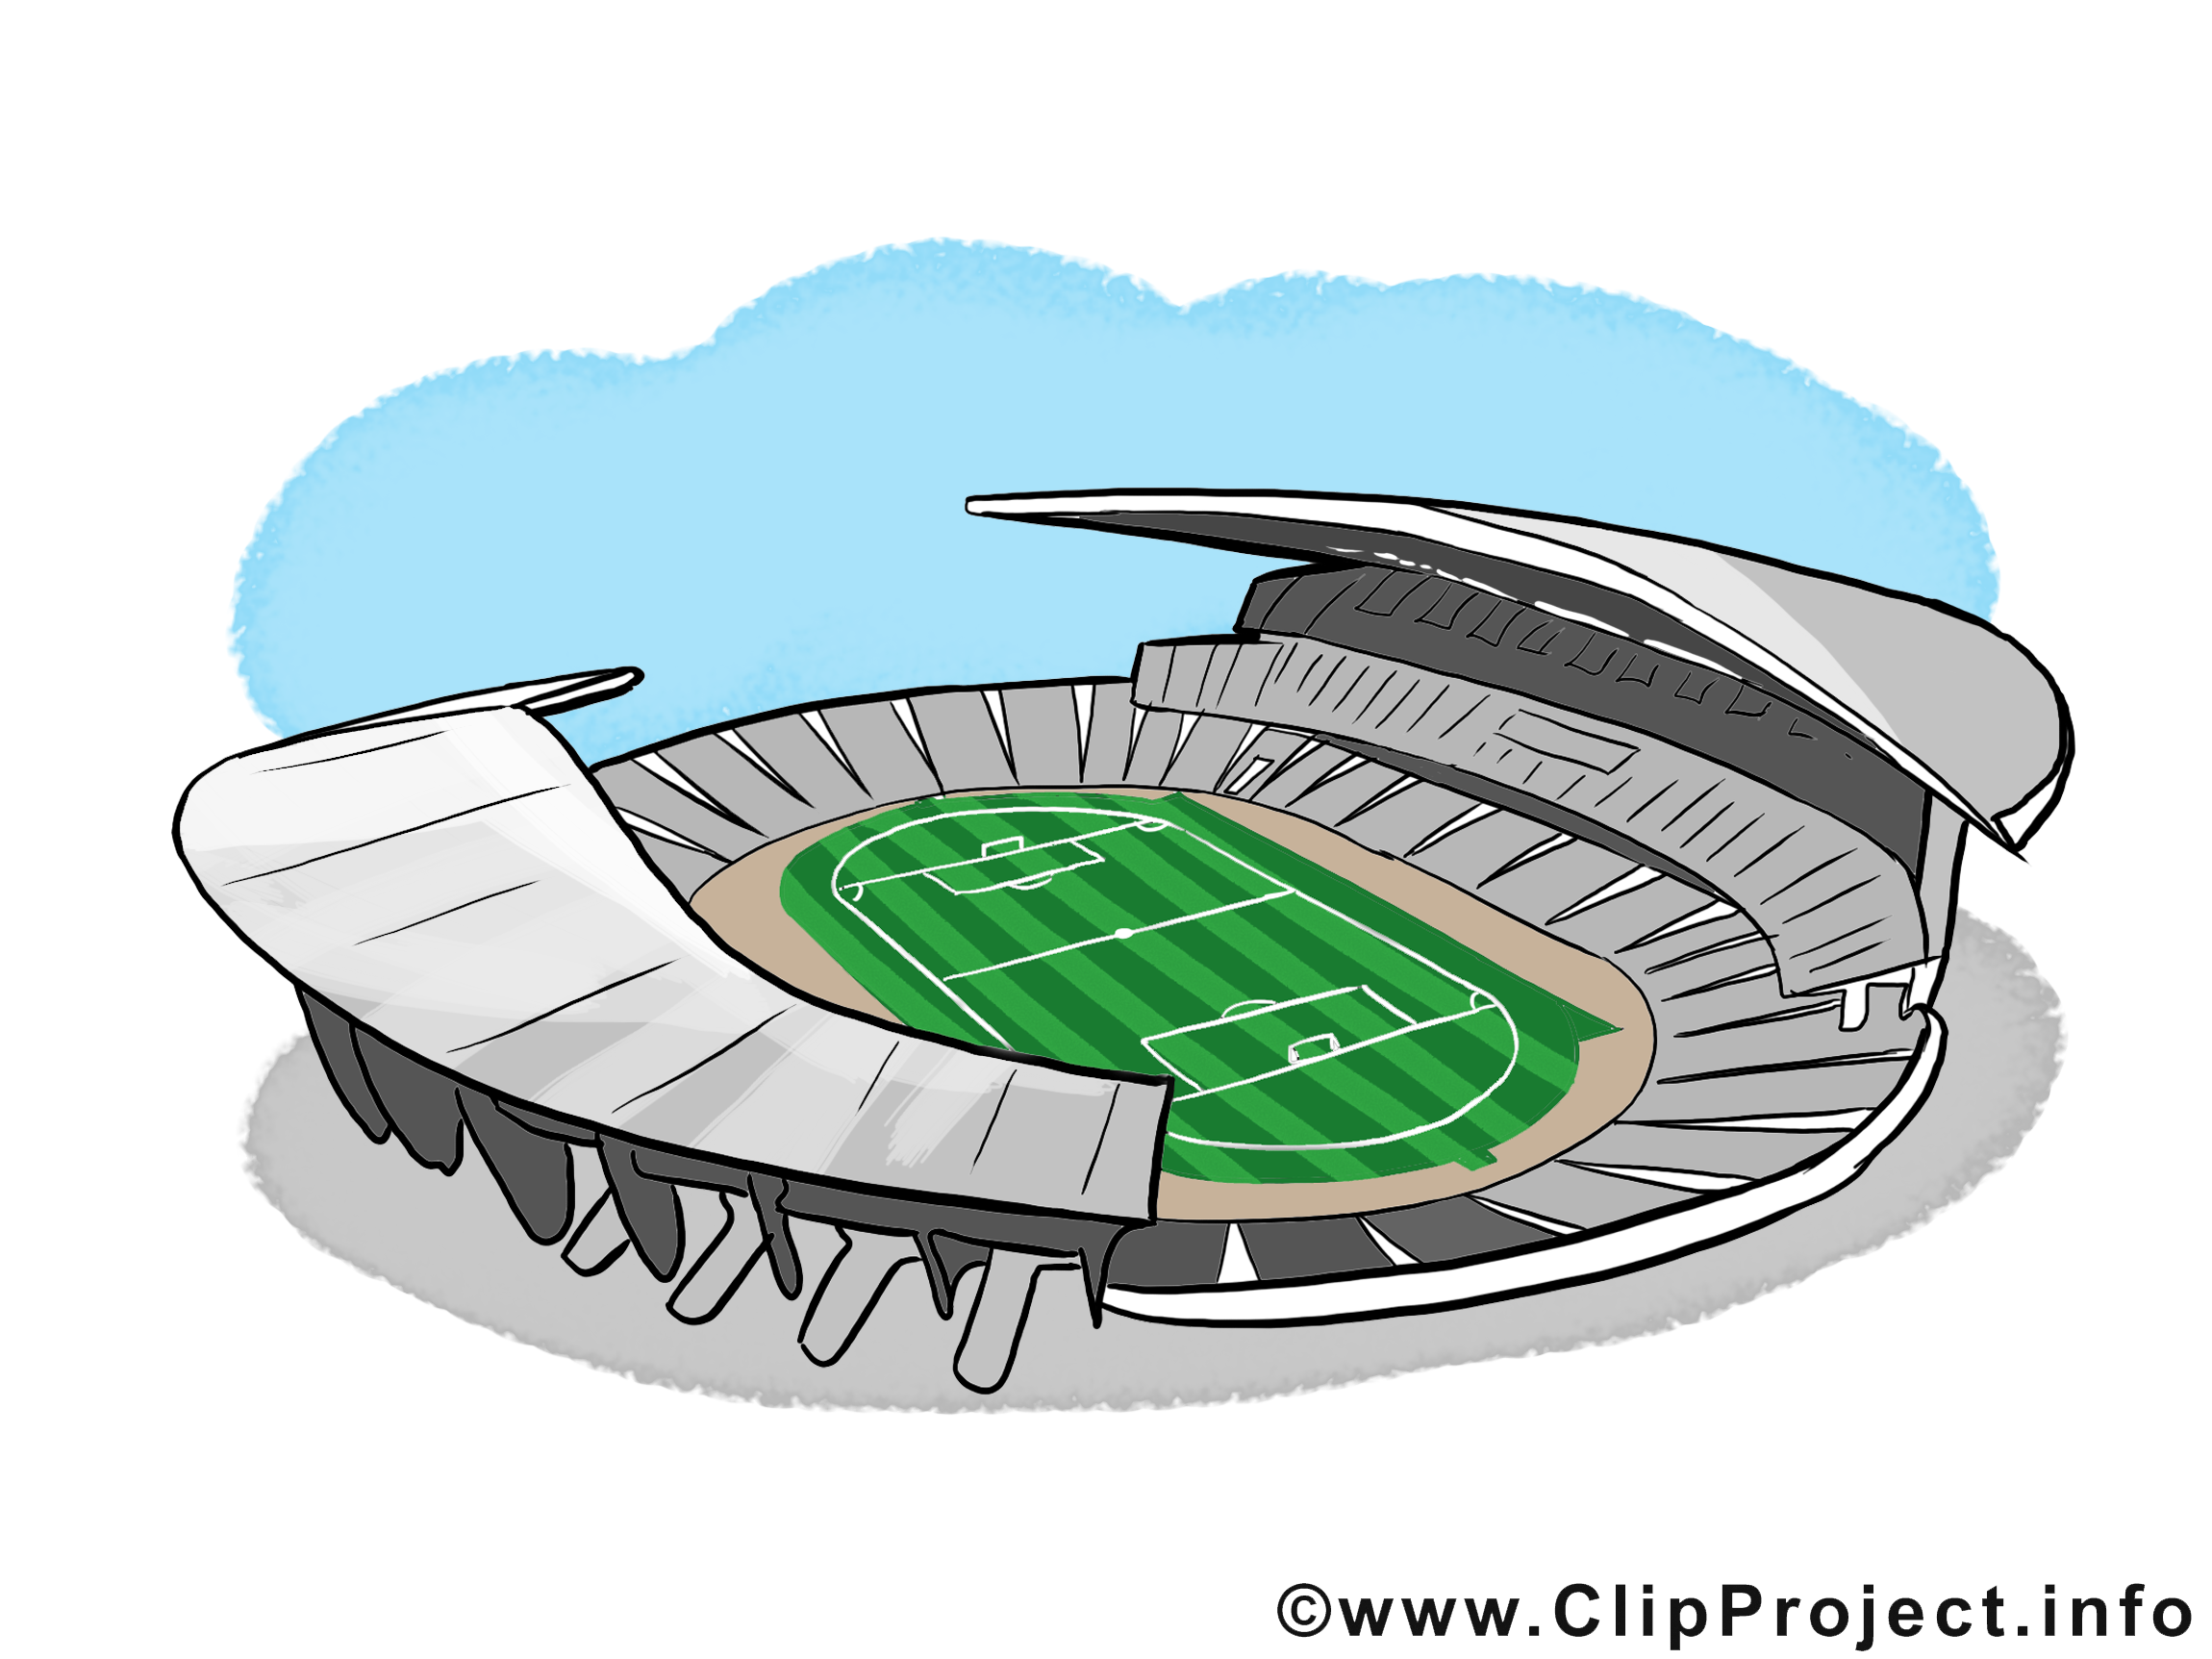 Stade image gratuite - Football illustration